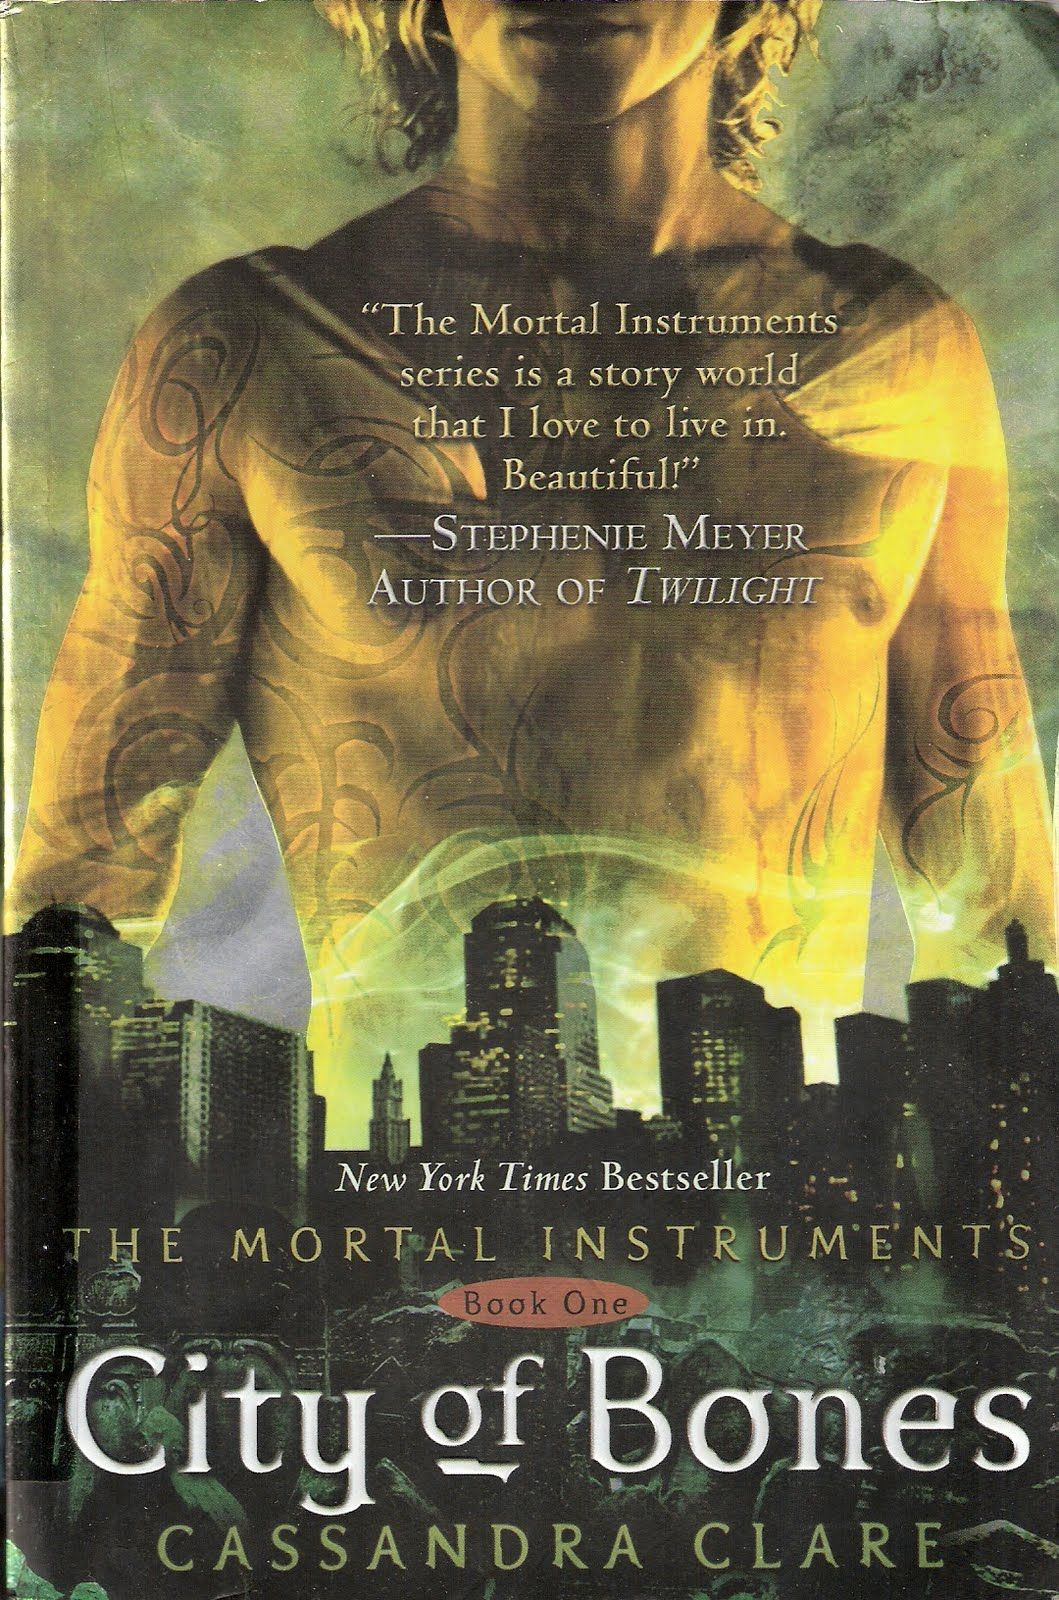 City Of Bones Omg So Good Can T Wait Till I Read The Next Book The Ending Had A Huge Turn Of Even With Images City Of Bones Book Mortal Instruments